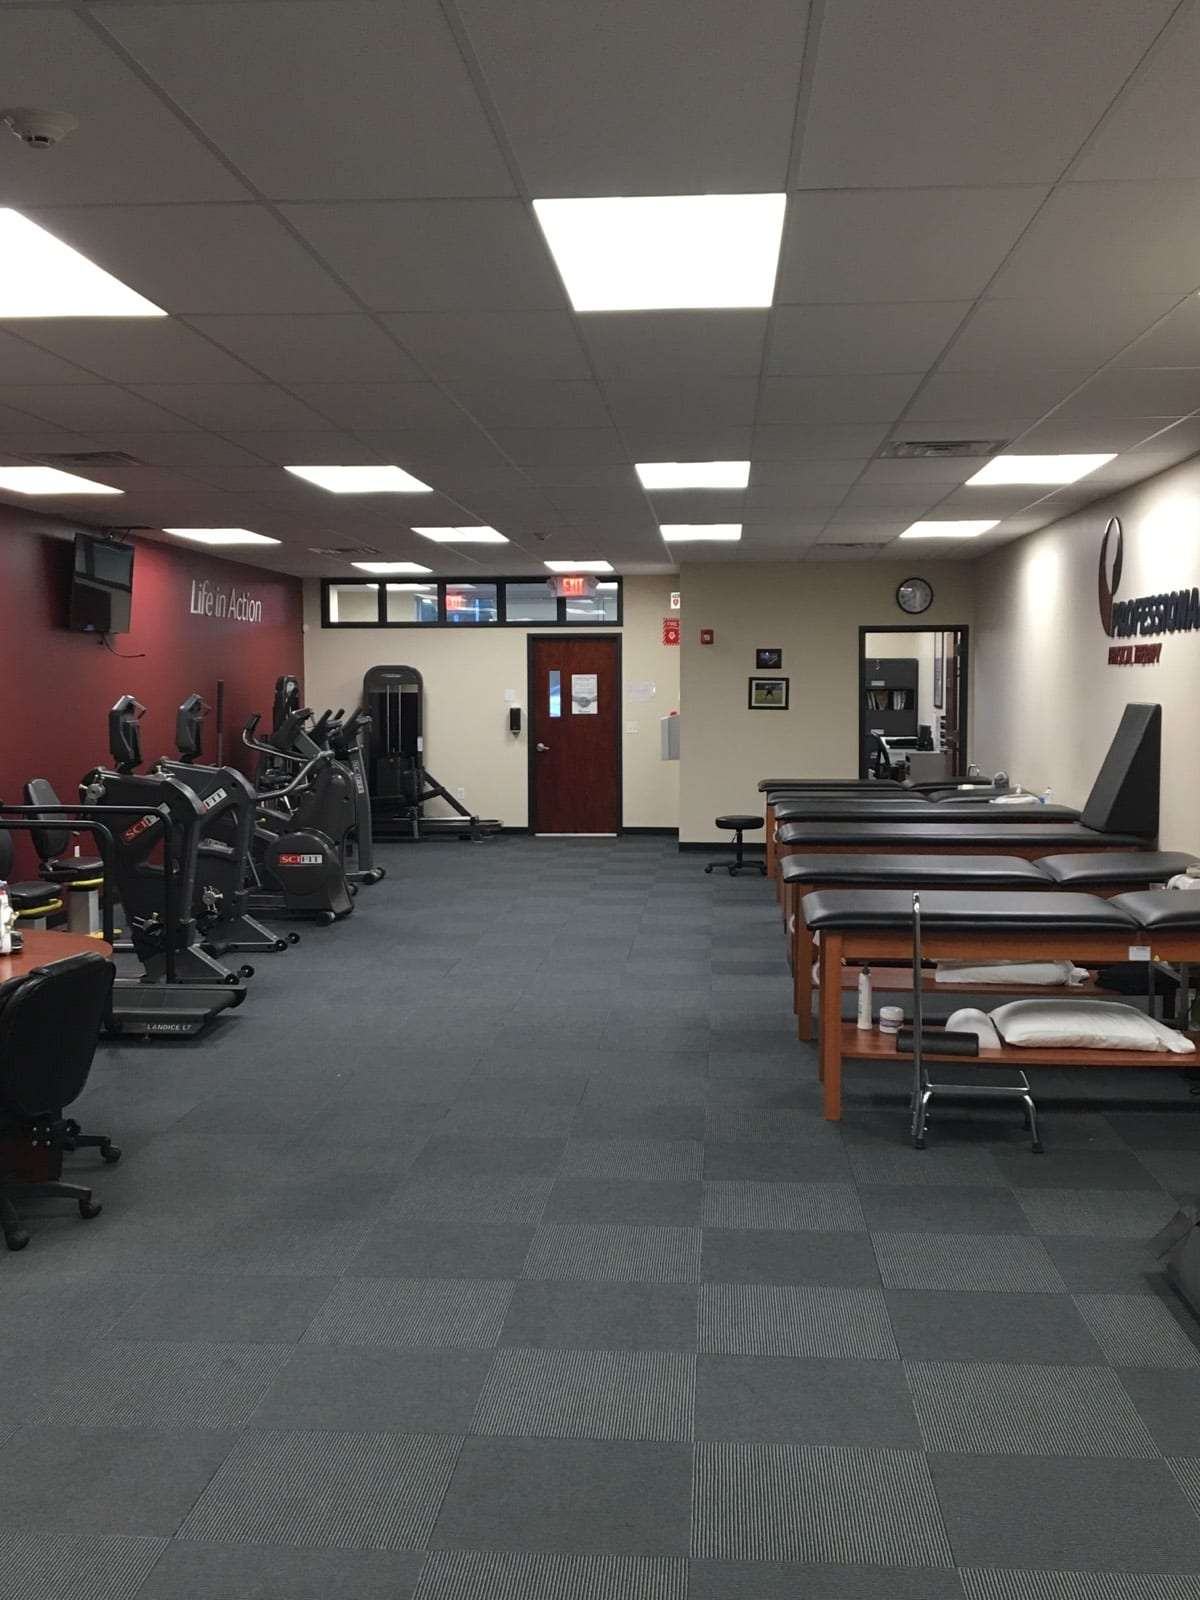 An image of the interior of our physical therapy clinic in Pompton Plains, New Jersey.